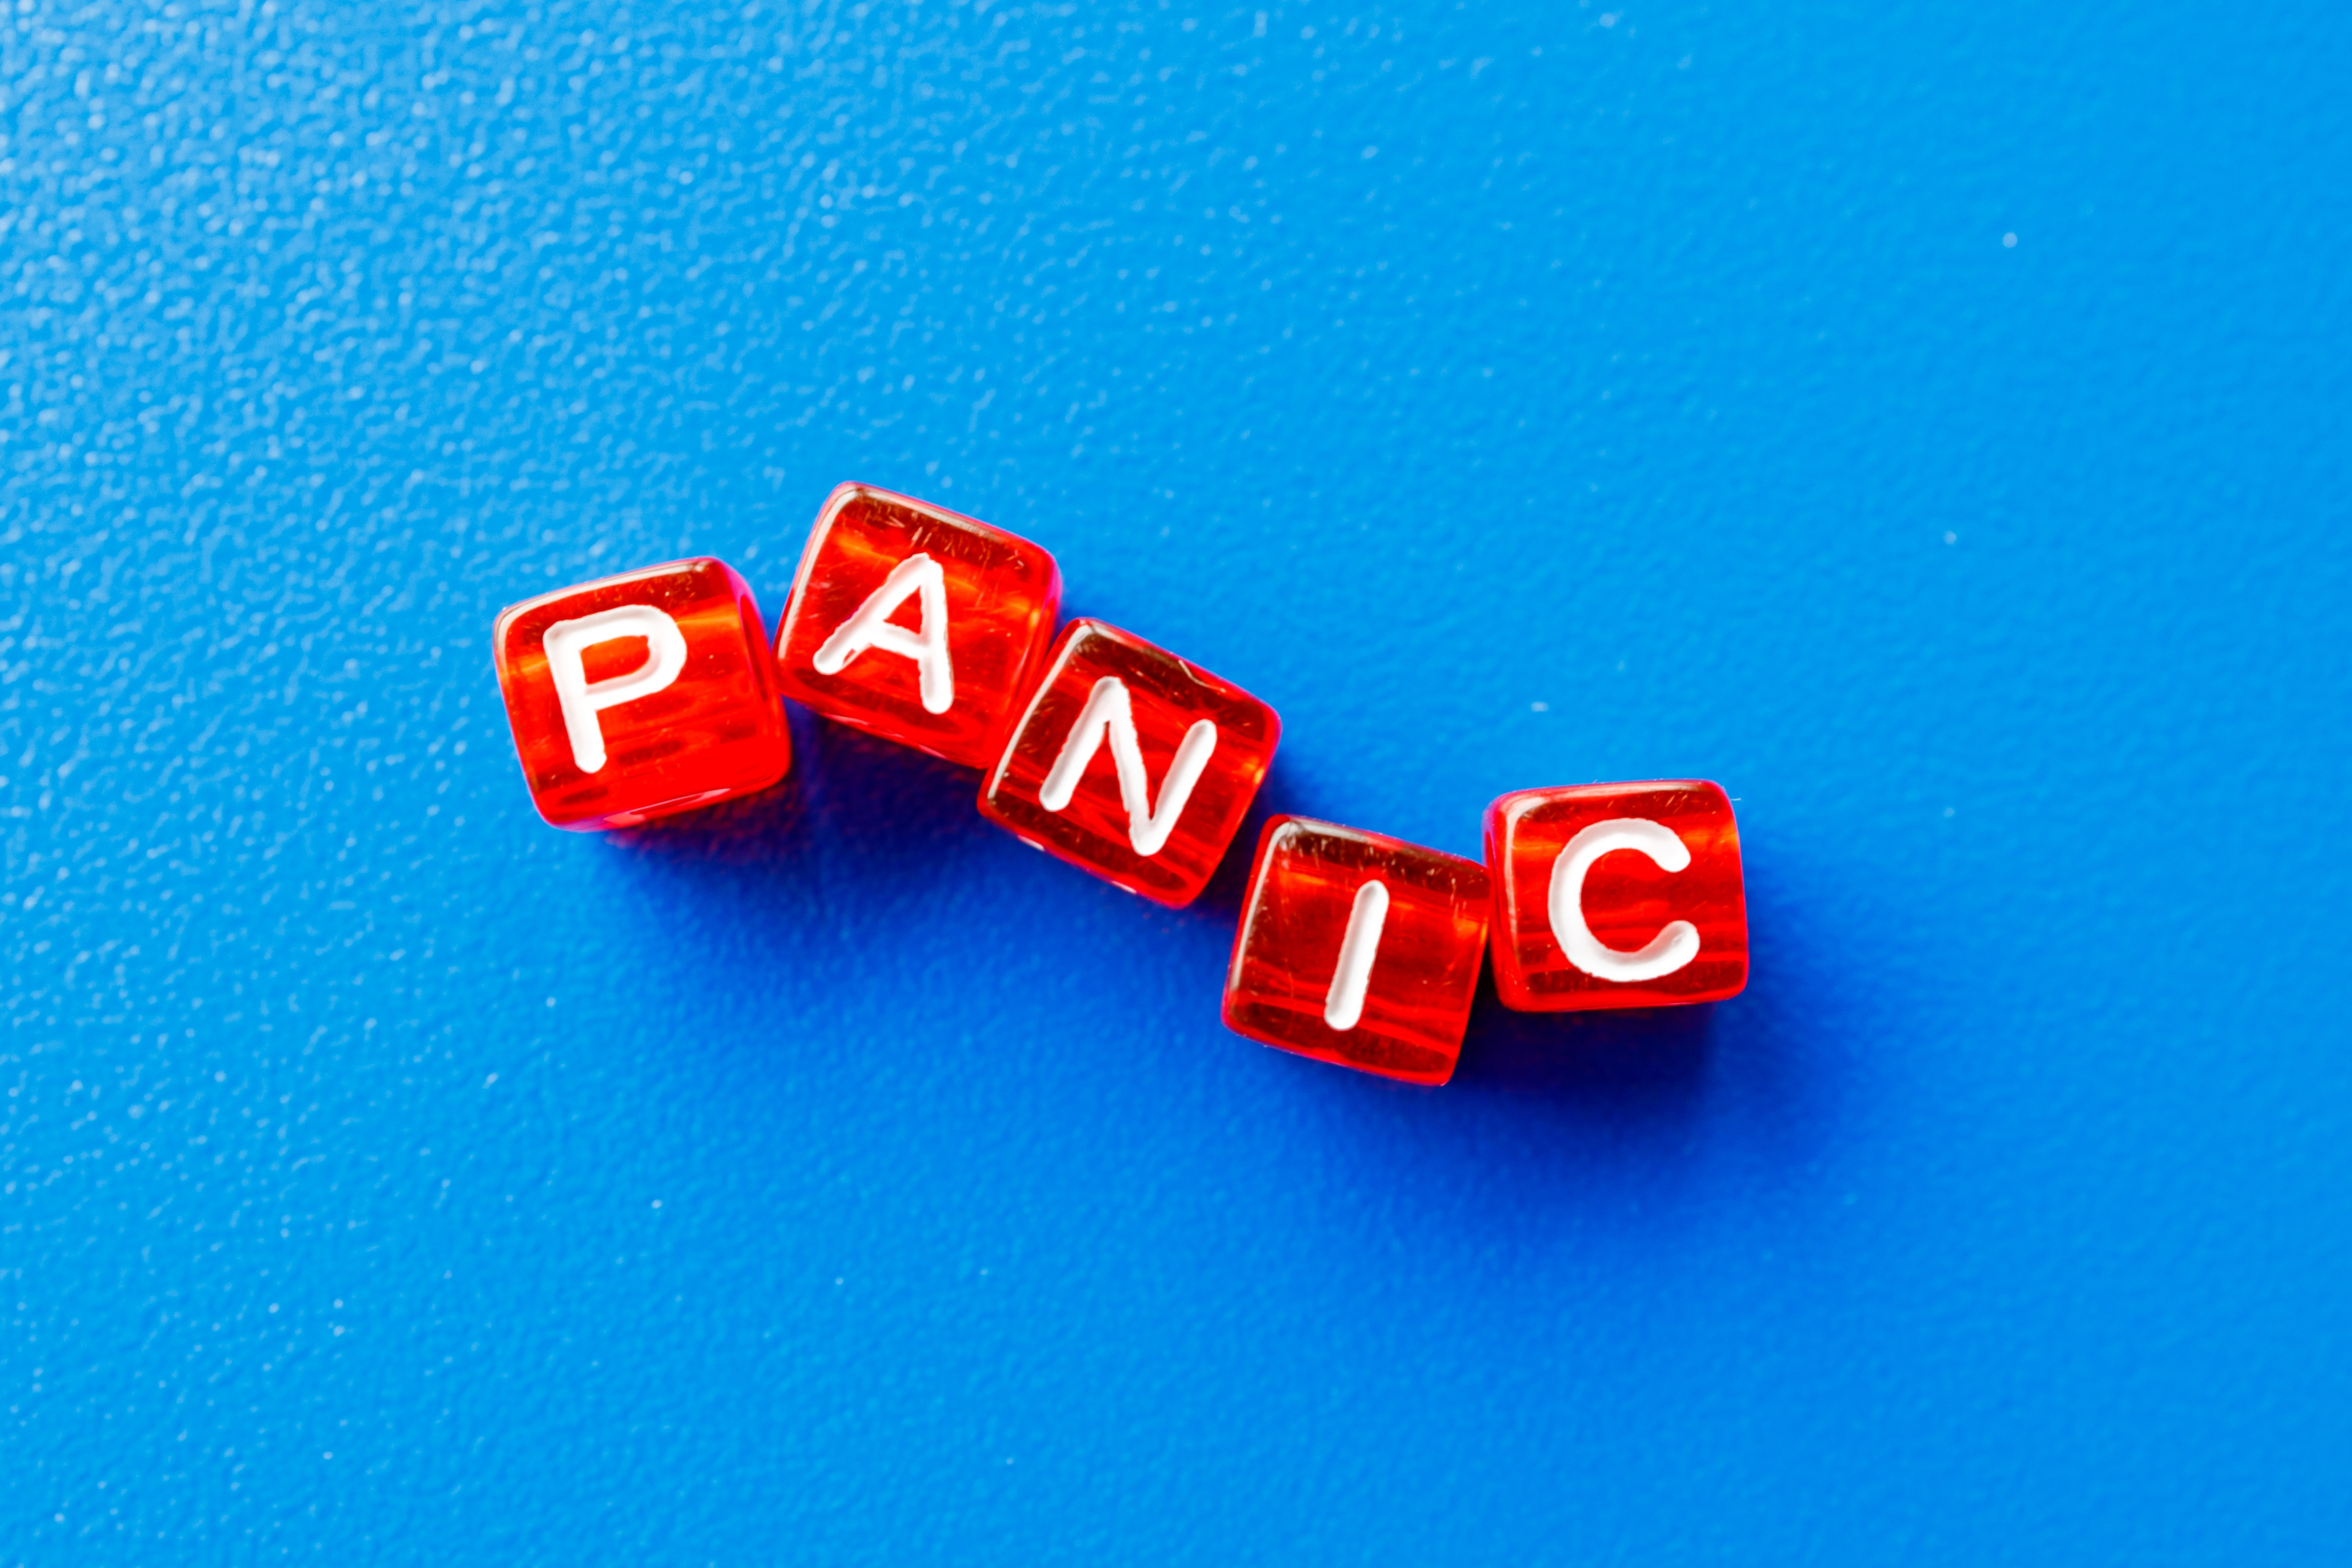 Red dice with the words panic on them laying on a blue background.